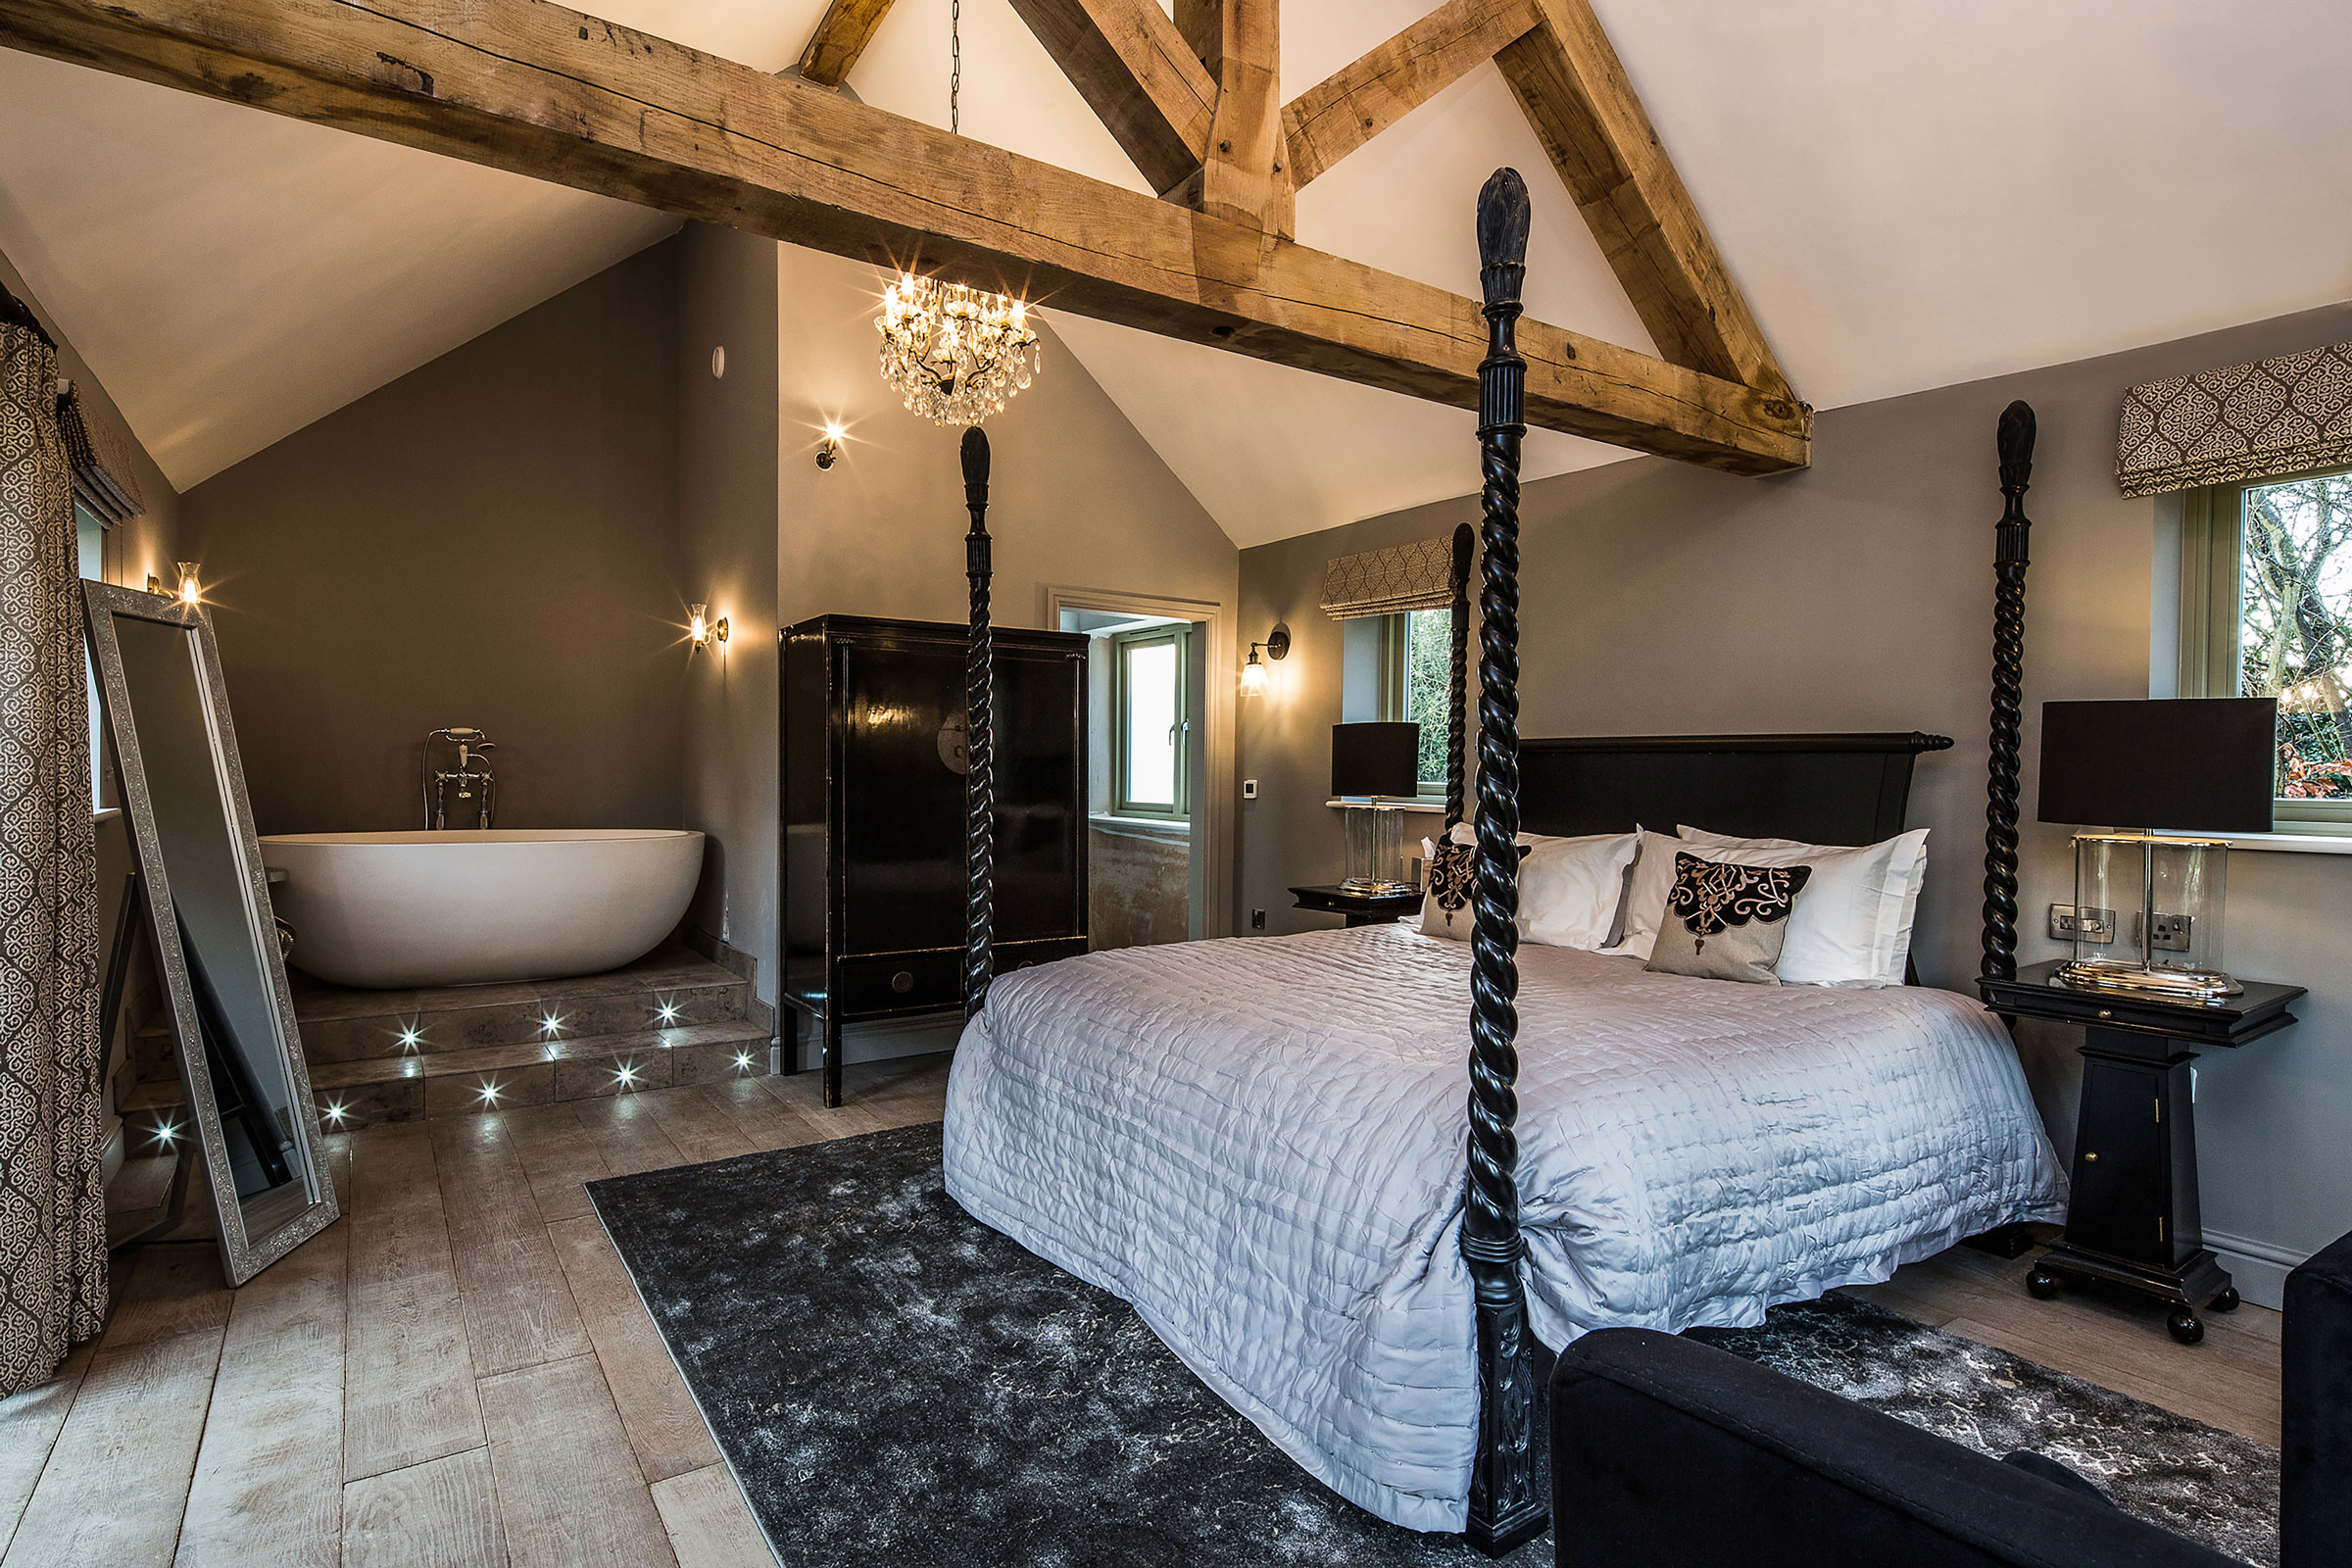 Bedroom with exposed reclaimed beams